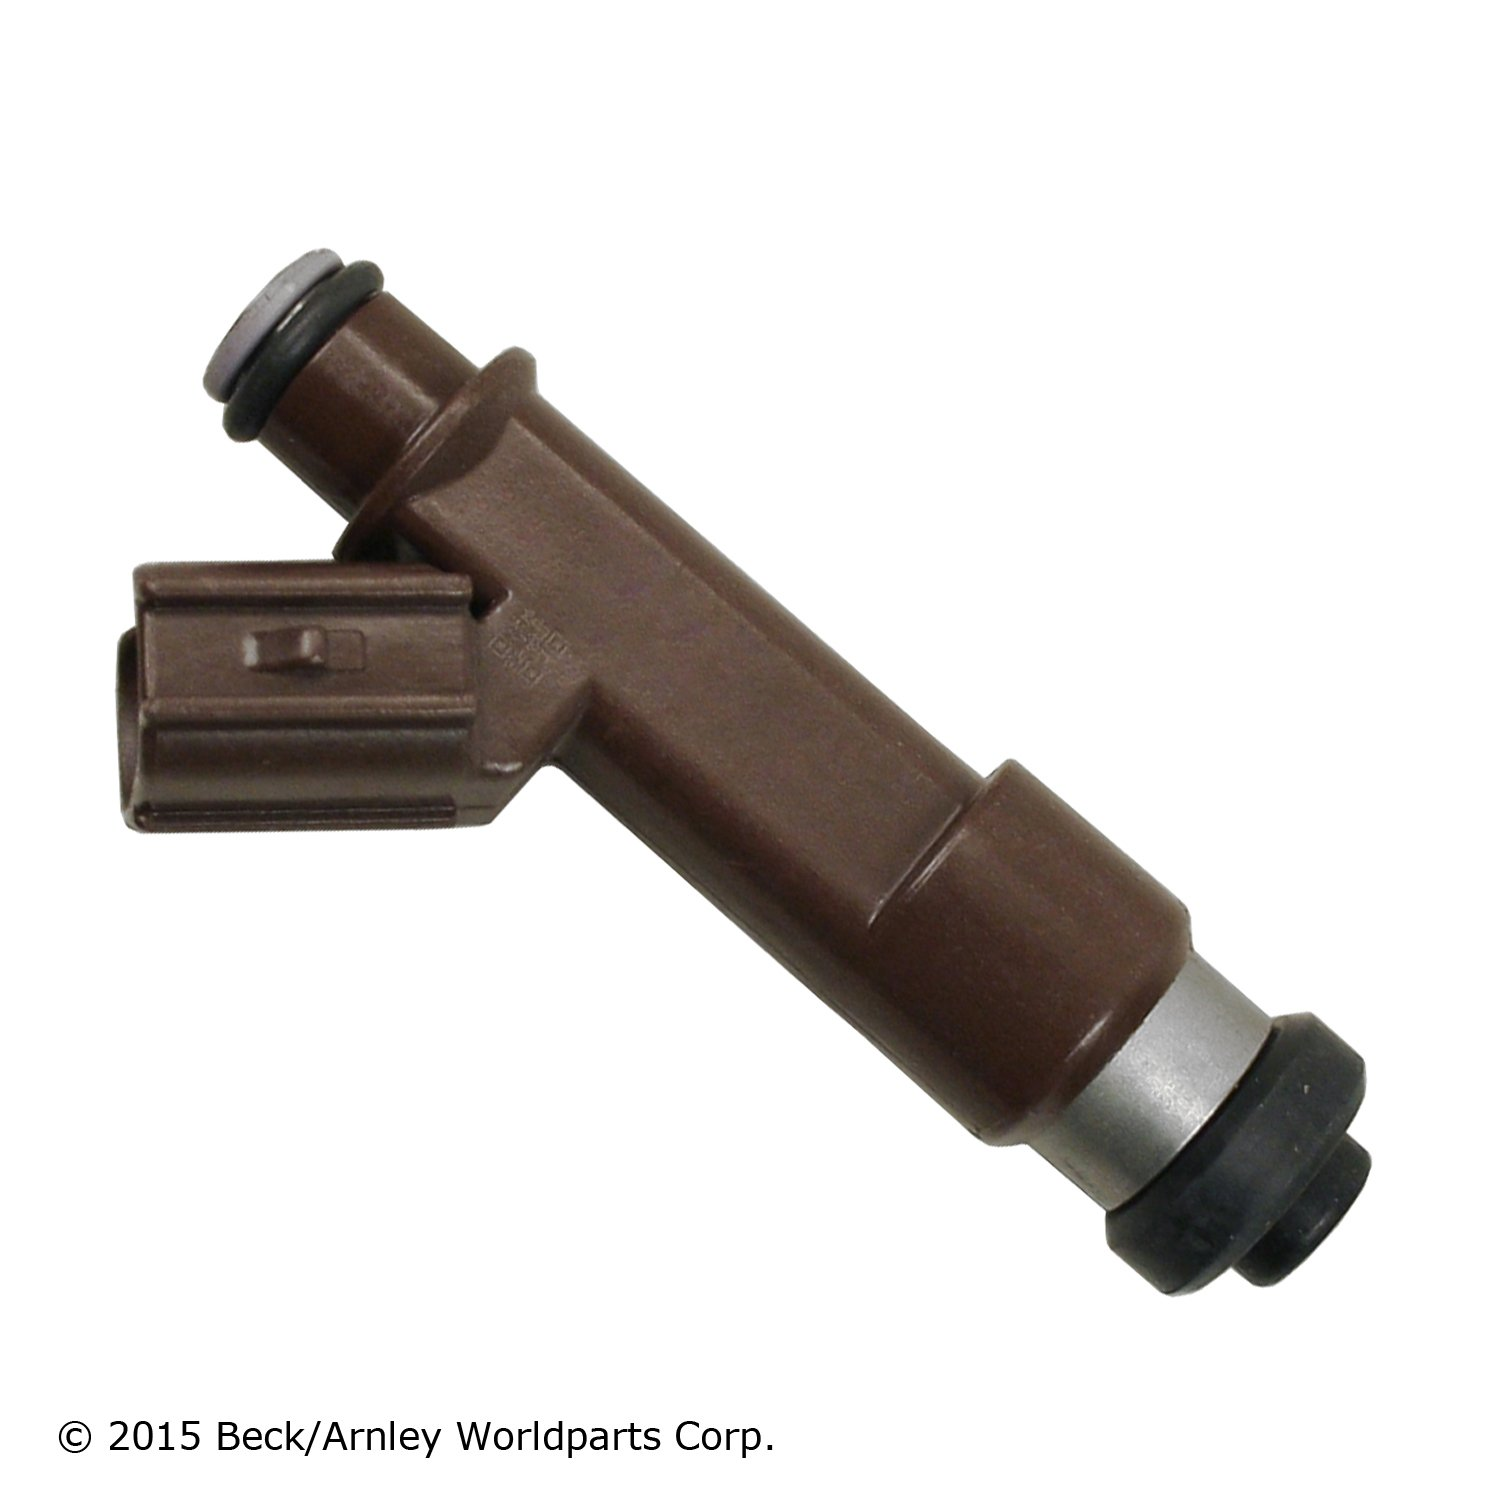 2008 Toyota Sequoia Fuel Injector Filter Location Ba 155 0457